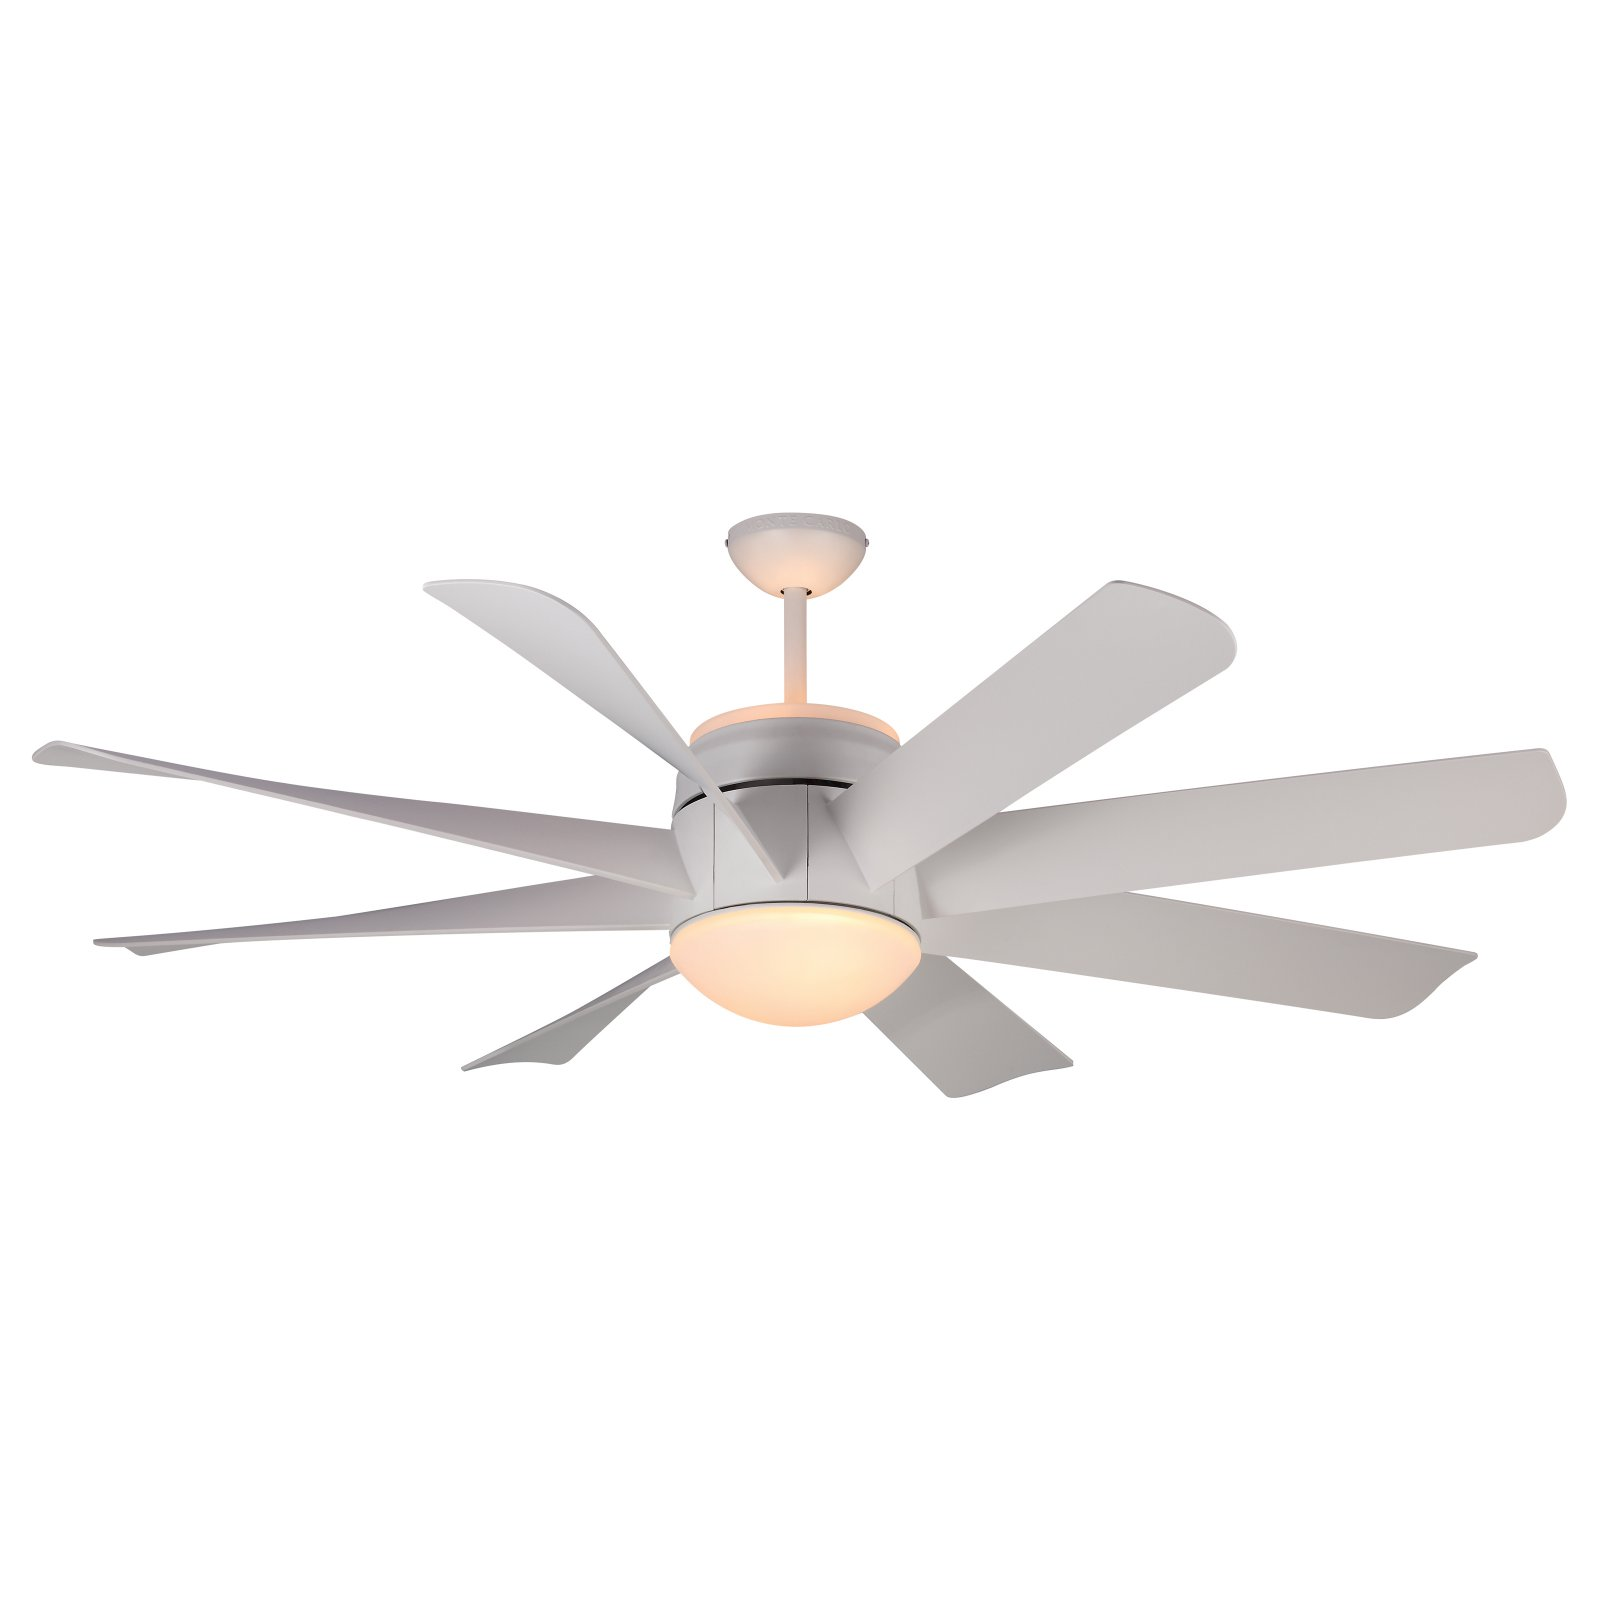 Monte Carlo 8TNR56 Turbine 56 in Ceiling Fan Walmart